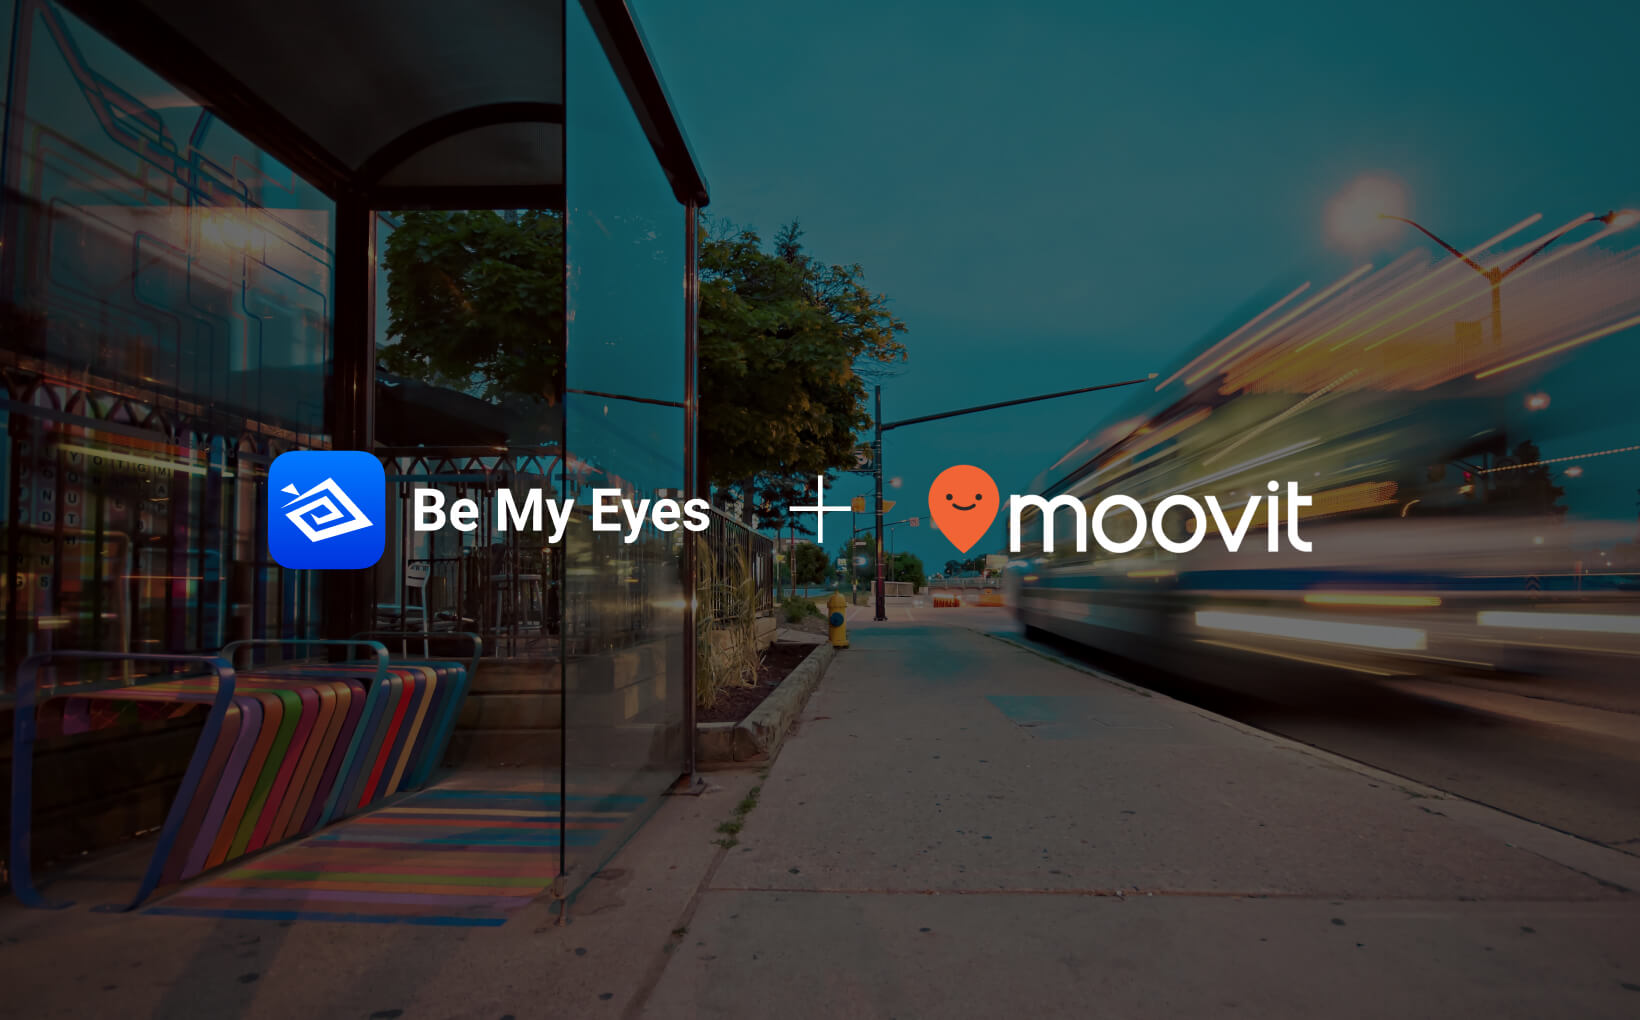 Moovit is the world's largest transit data and analytics company and the #1 transit app worldwide.